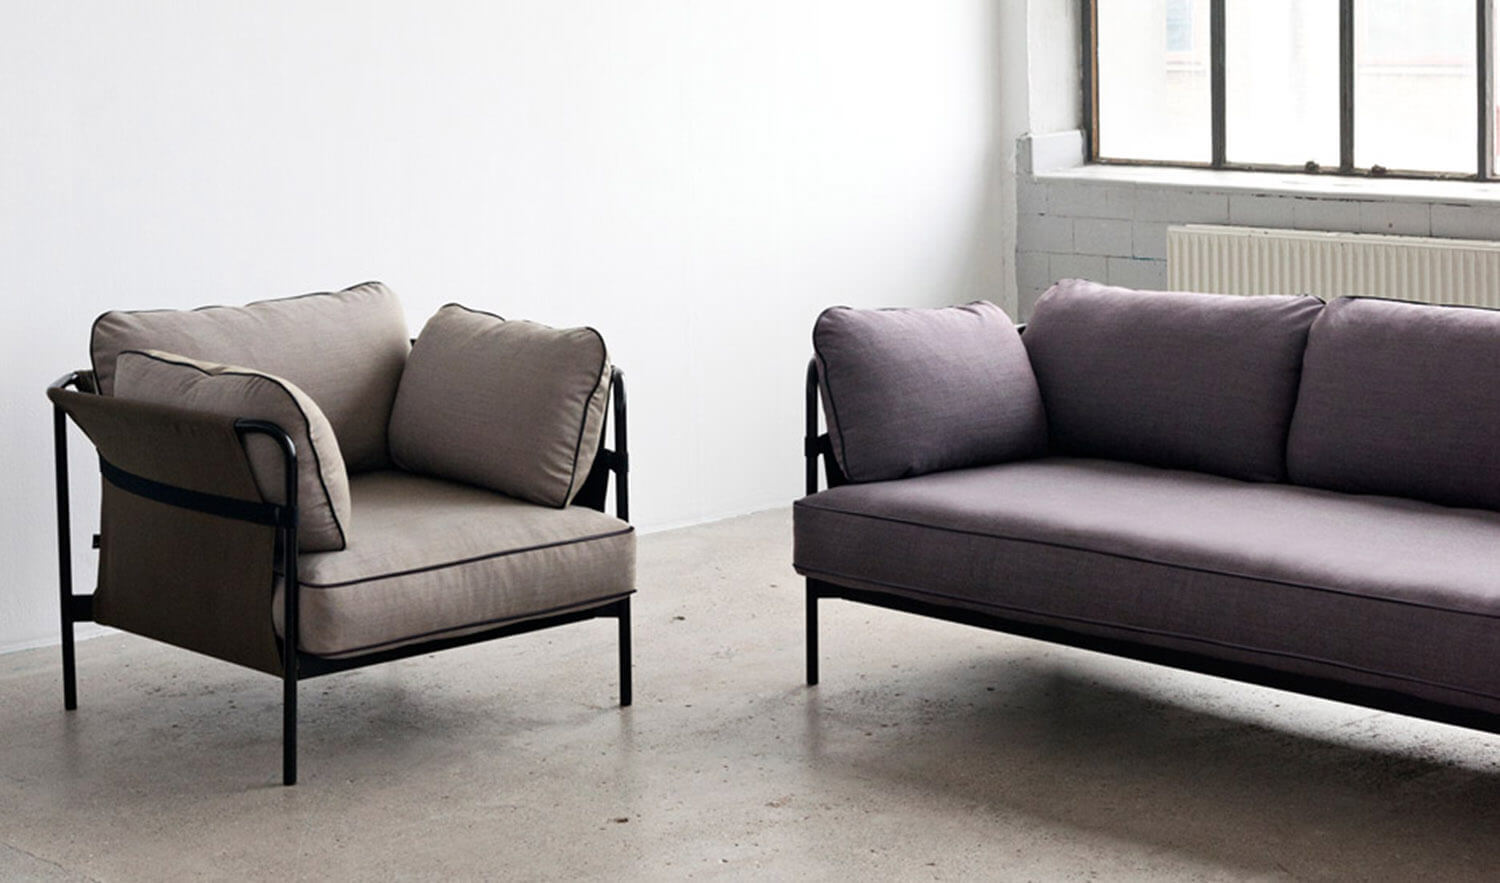 Est Living Bouroullec for Hay Can Sofa